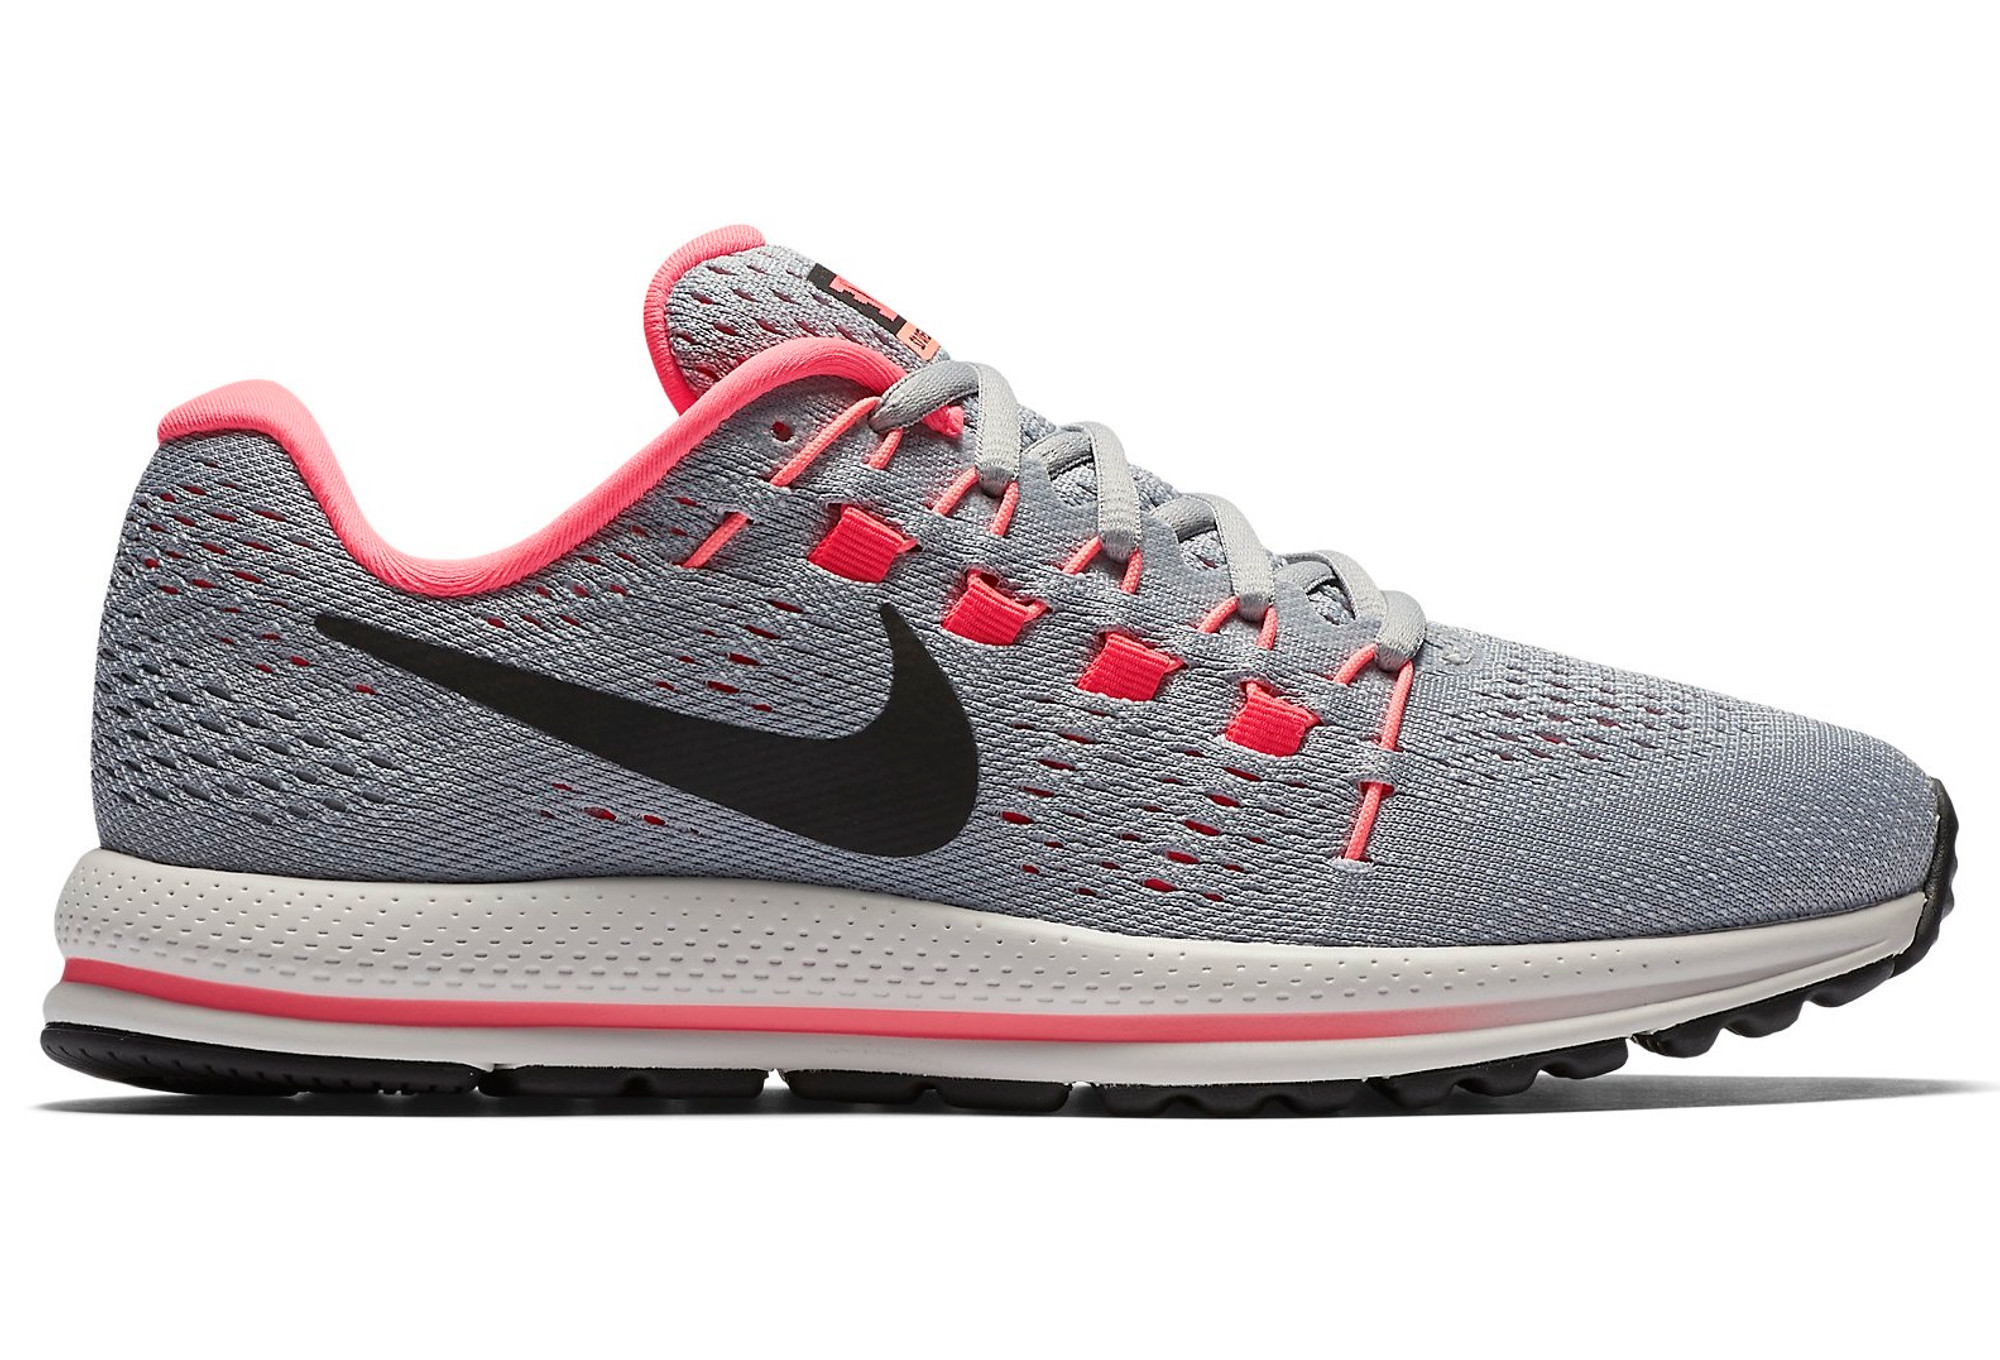 679f6637ff6 Nike Air Zoom Vomero 12 Women Grey Pink